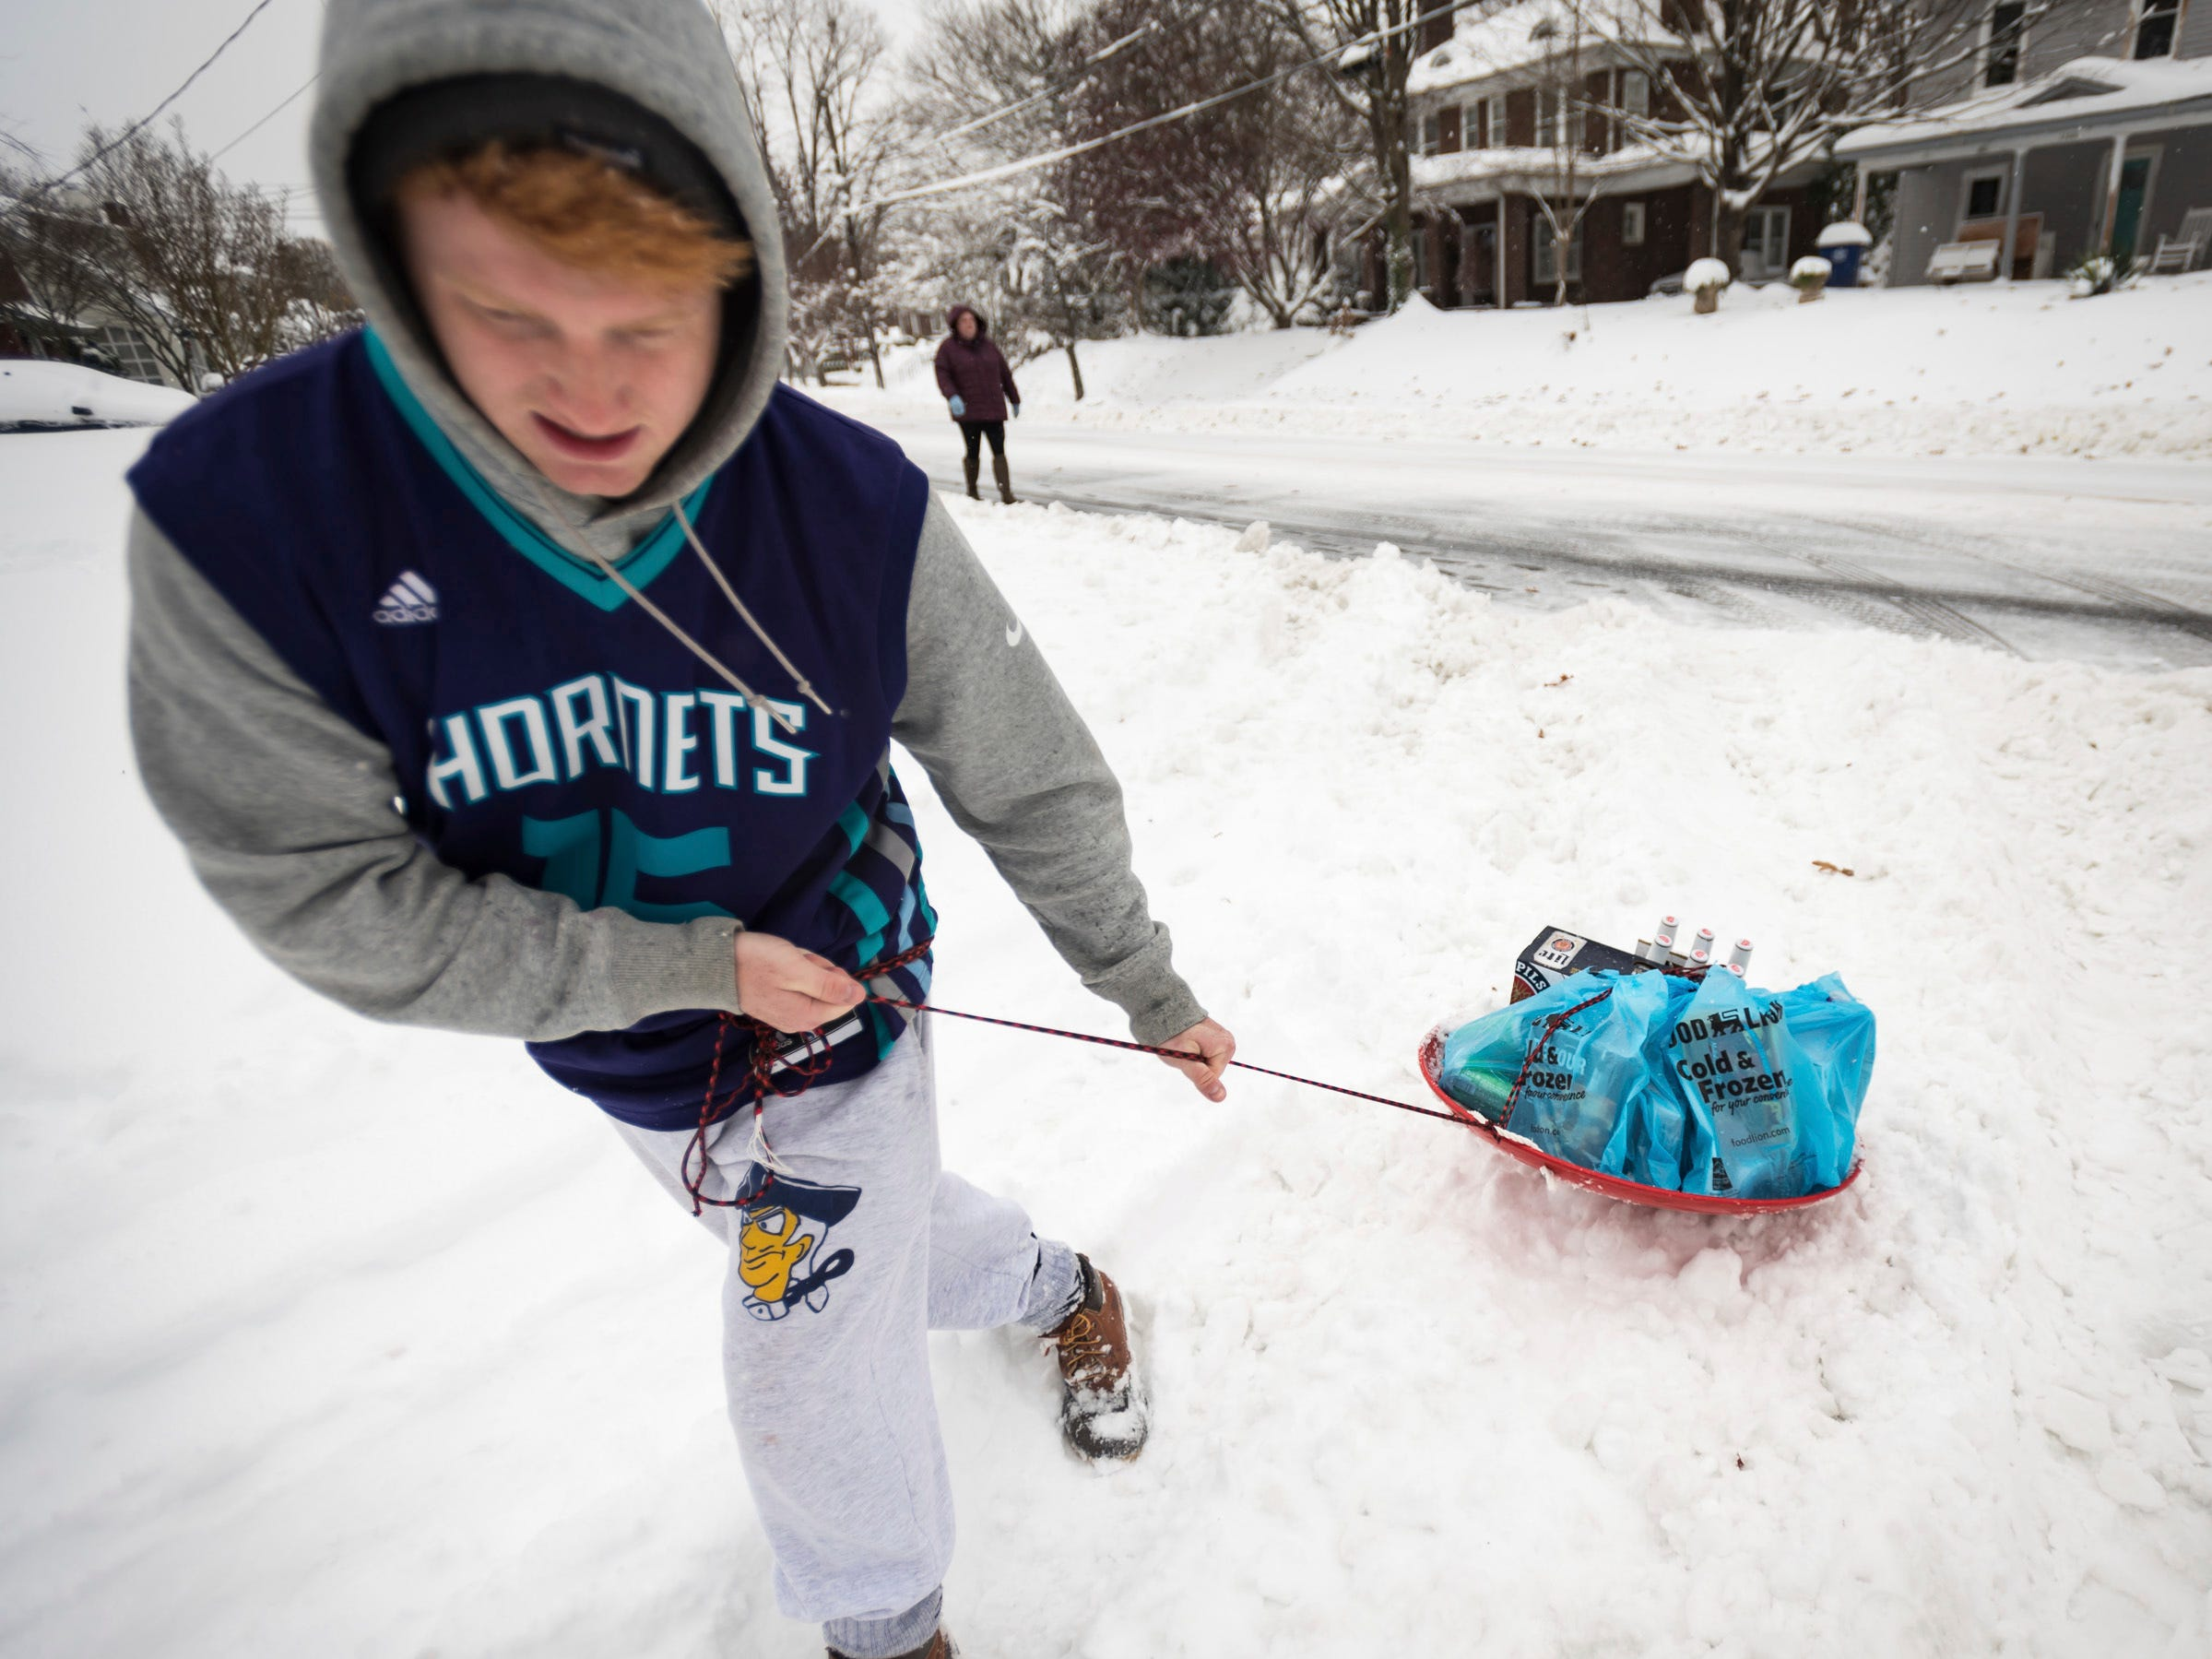 Daniel Havens struggles to pull a sled full of groceries tied to his waist on Dec. 9 in Winston-Salem, N.C.